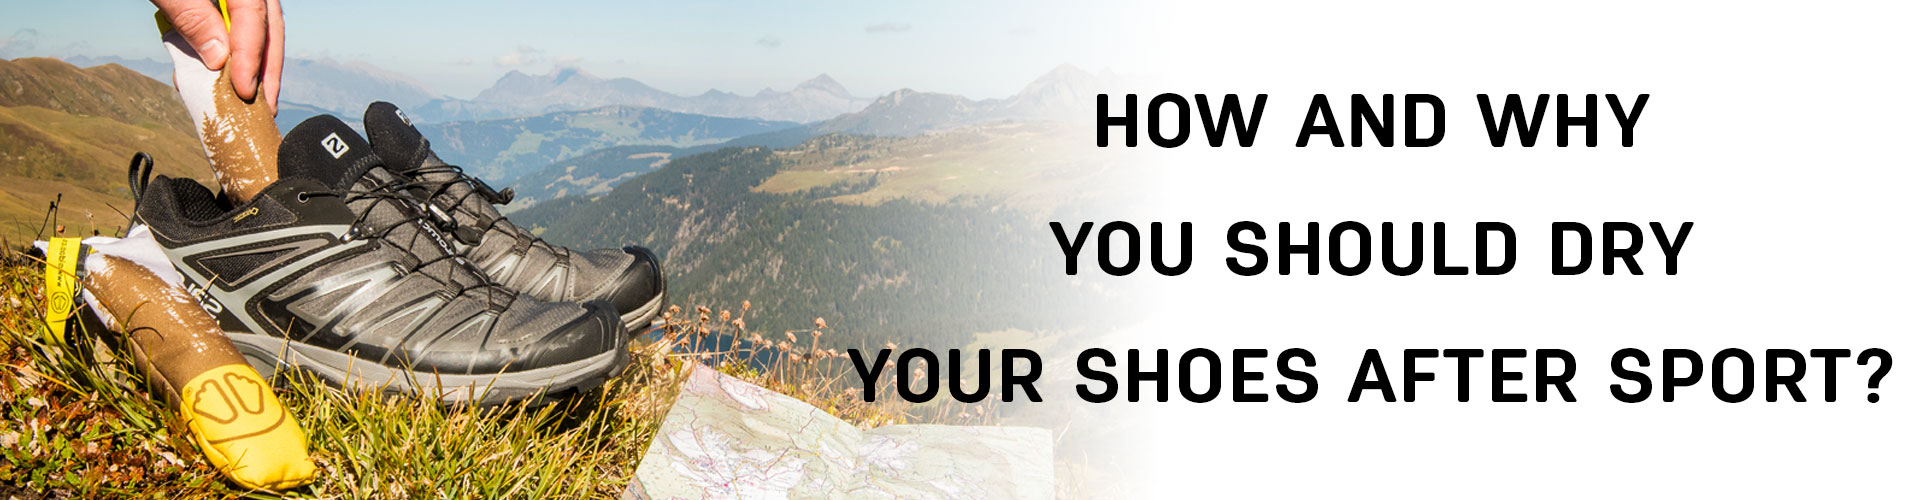 How and why you should dry your shoes after sports